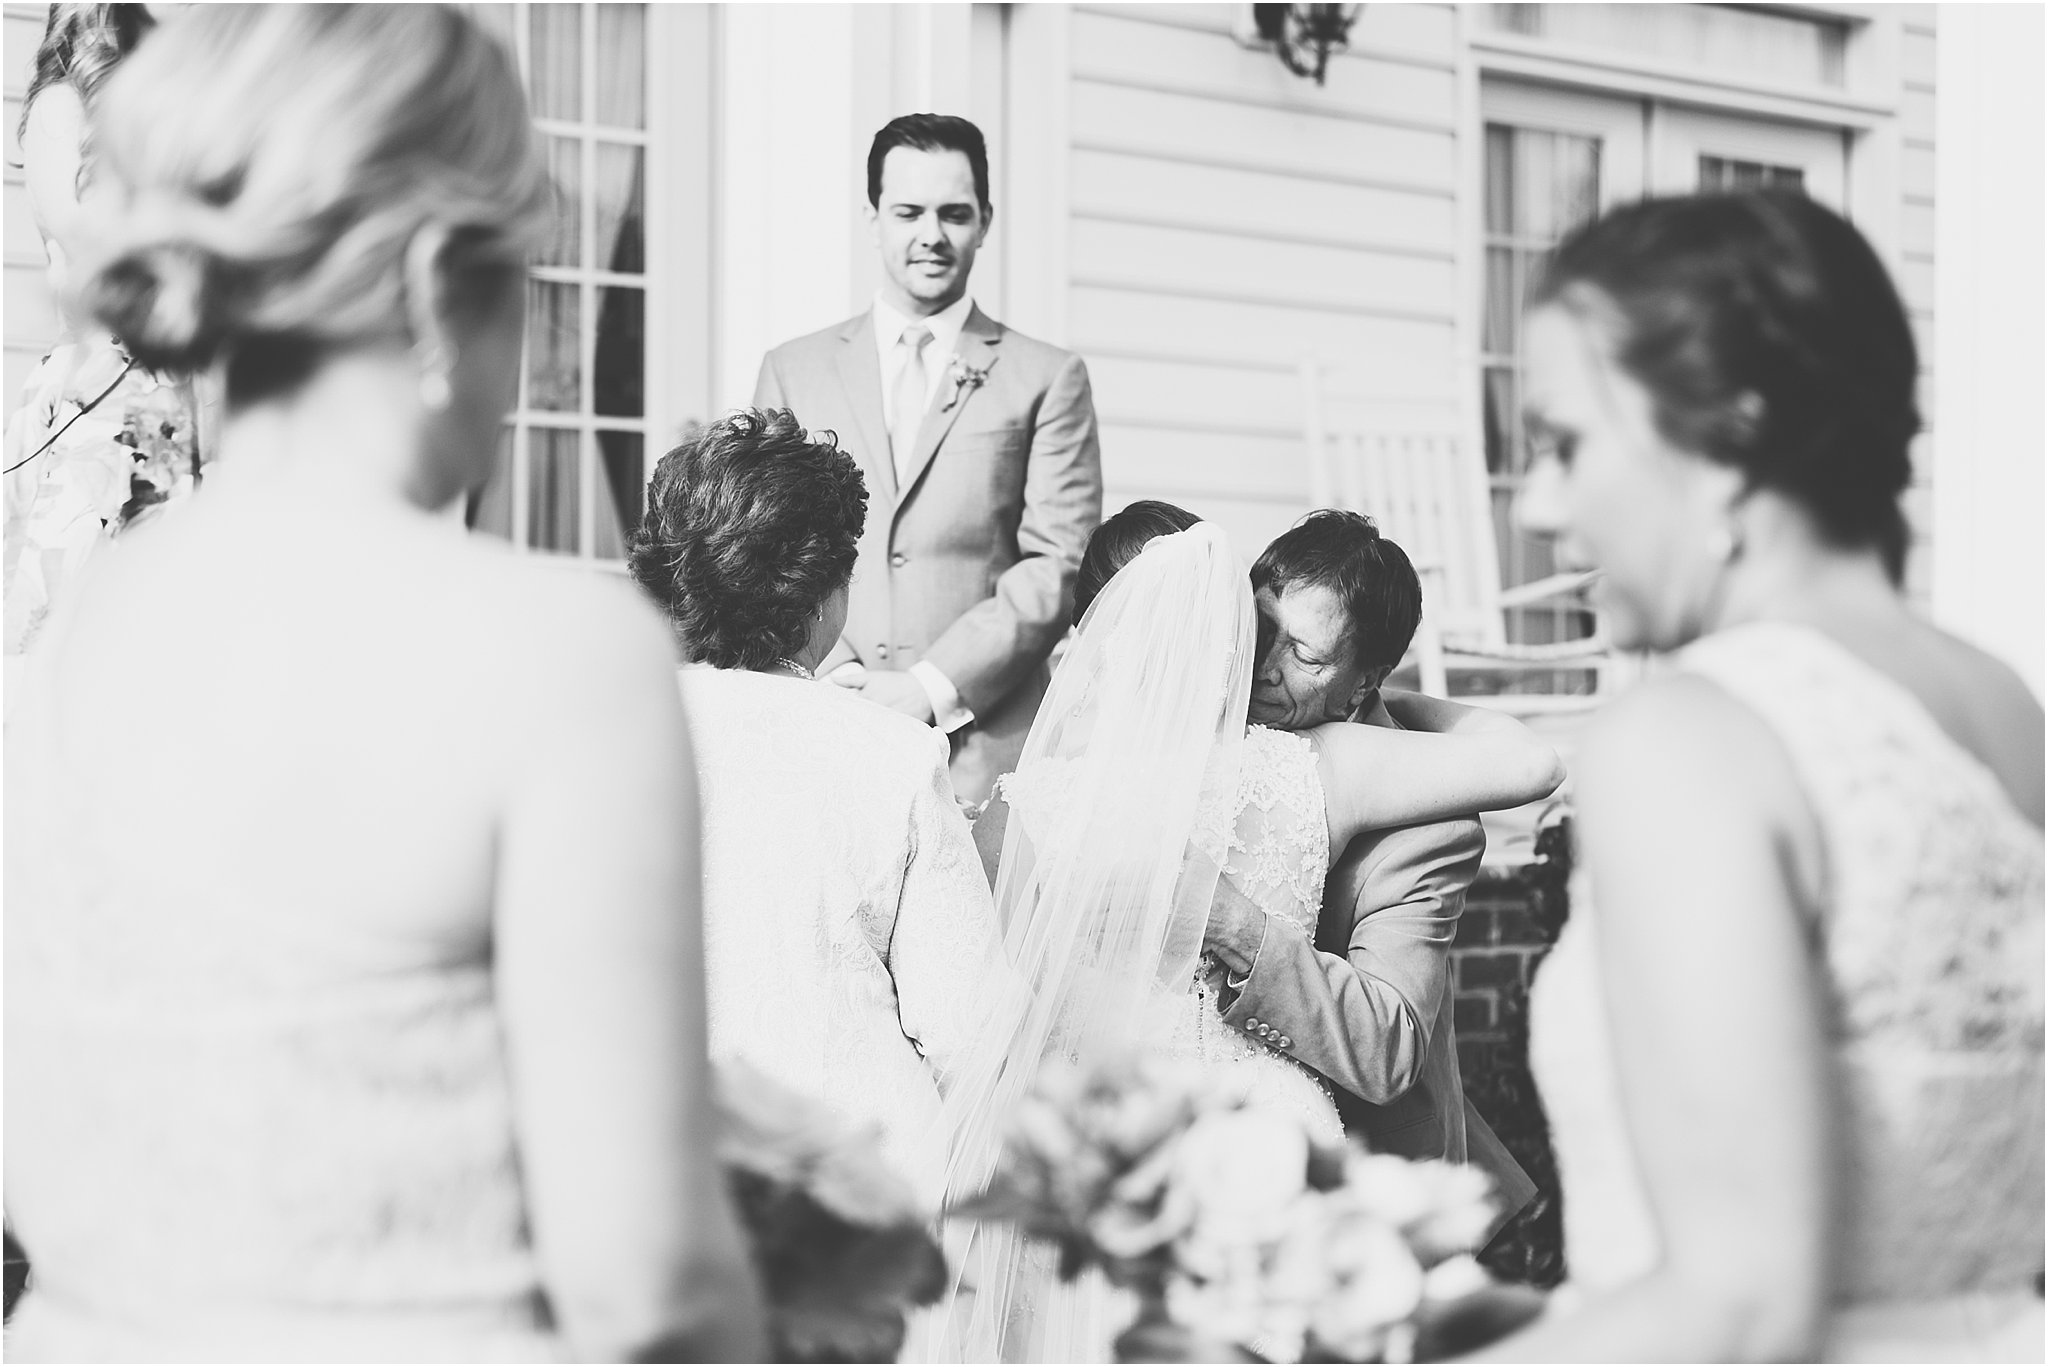 jessica_ryan_photography_holly_ridge_manor_wedding_roost_flowers_jamie_leigh_events_dhalia_edwards_candid_vibrant_wedding_colors_1293